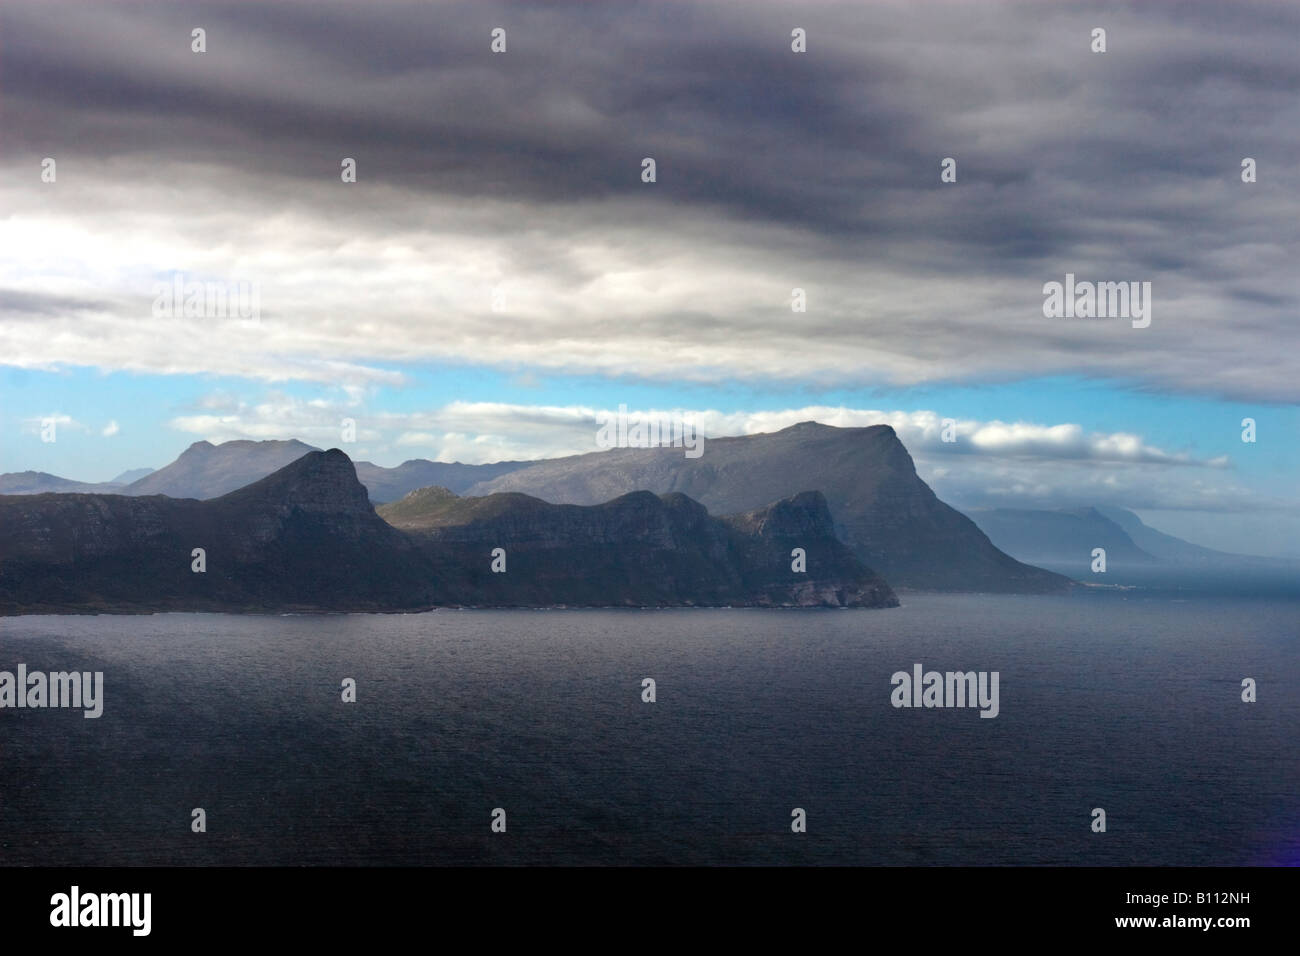 False Bay and the Table Mountain National Park seen from Cape Point - Stock Image